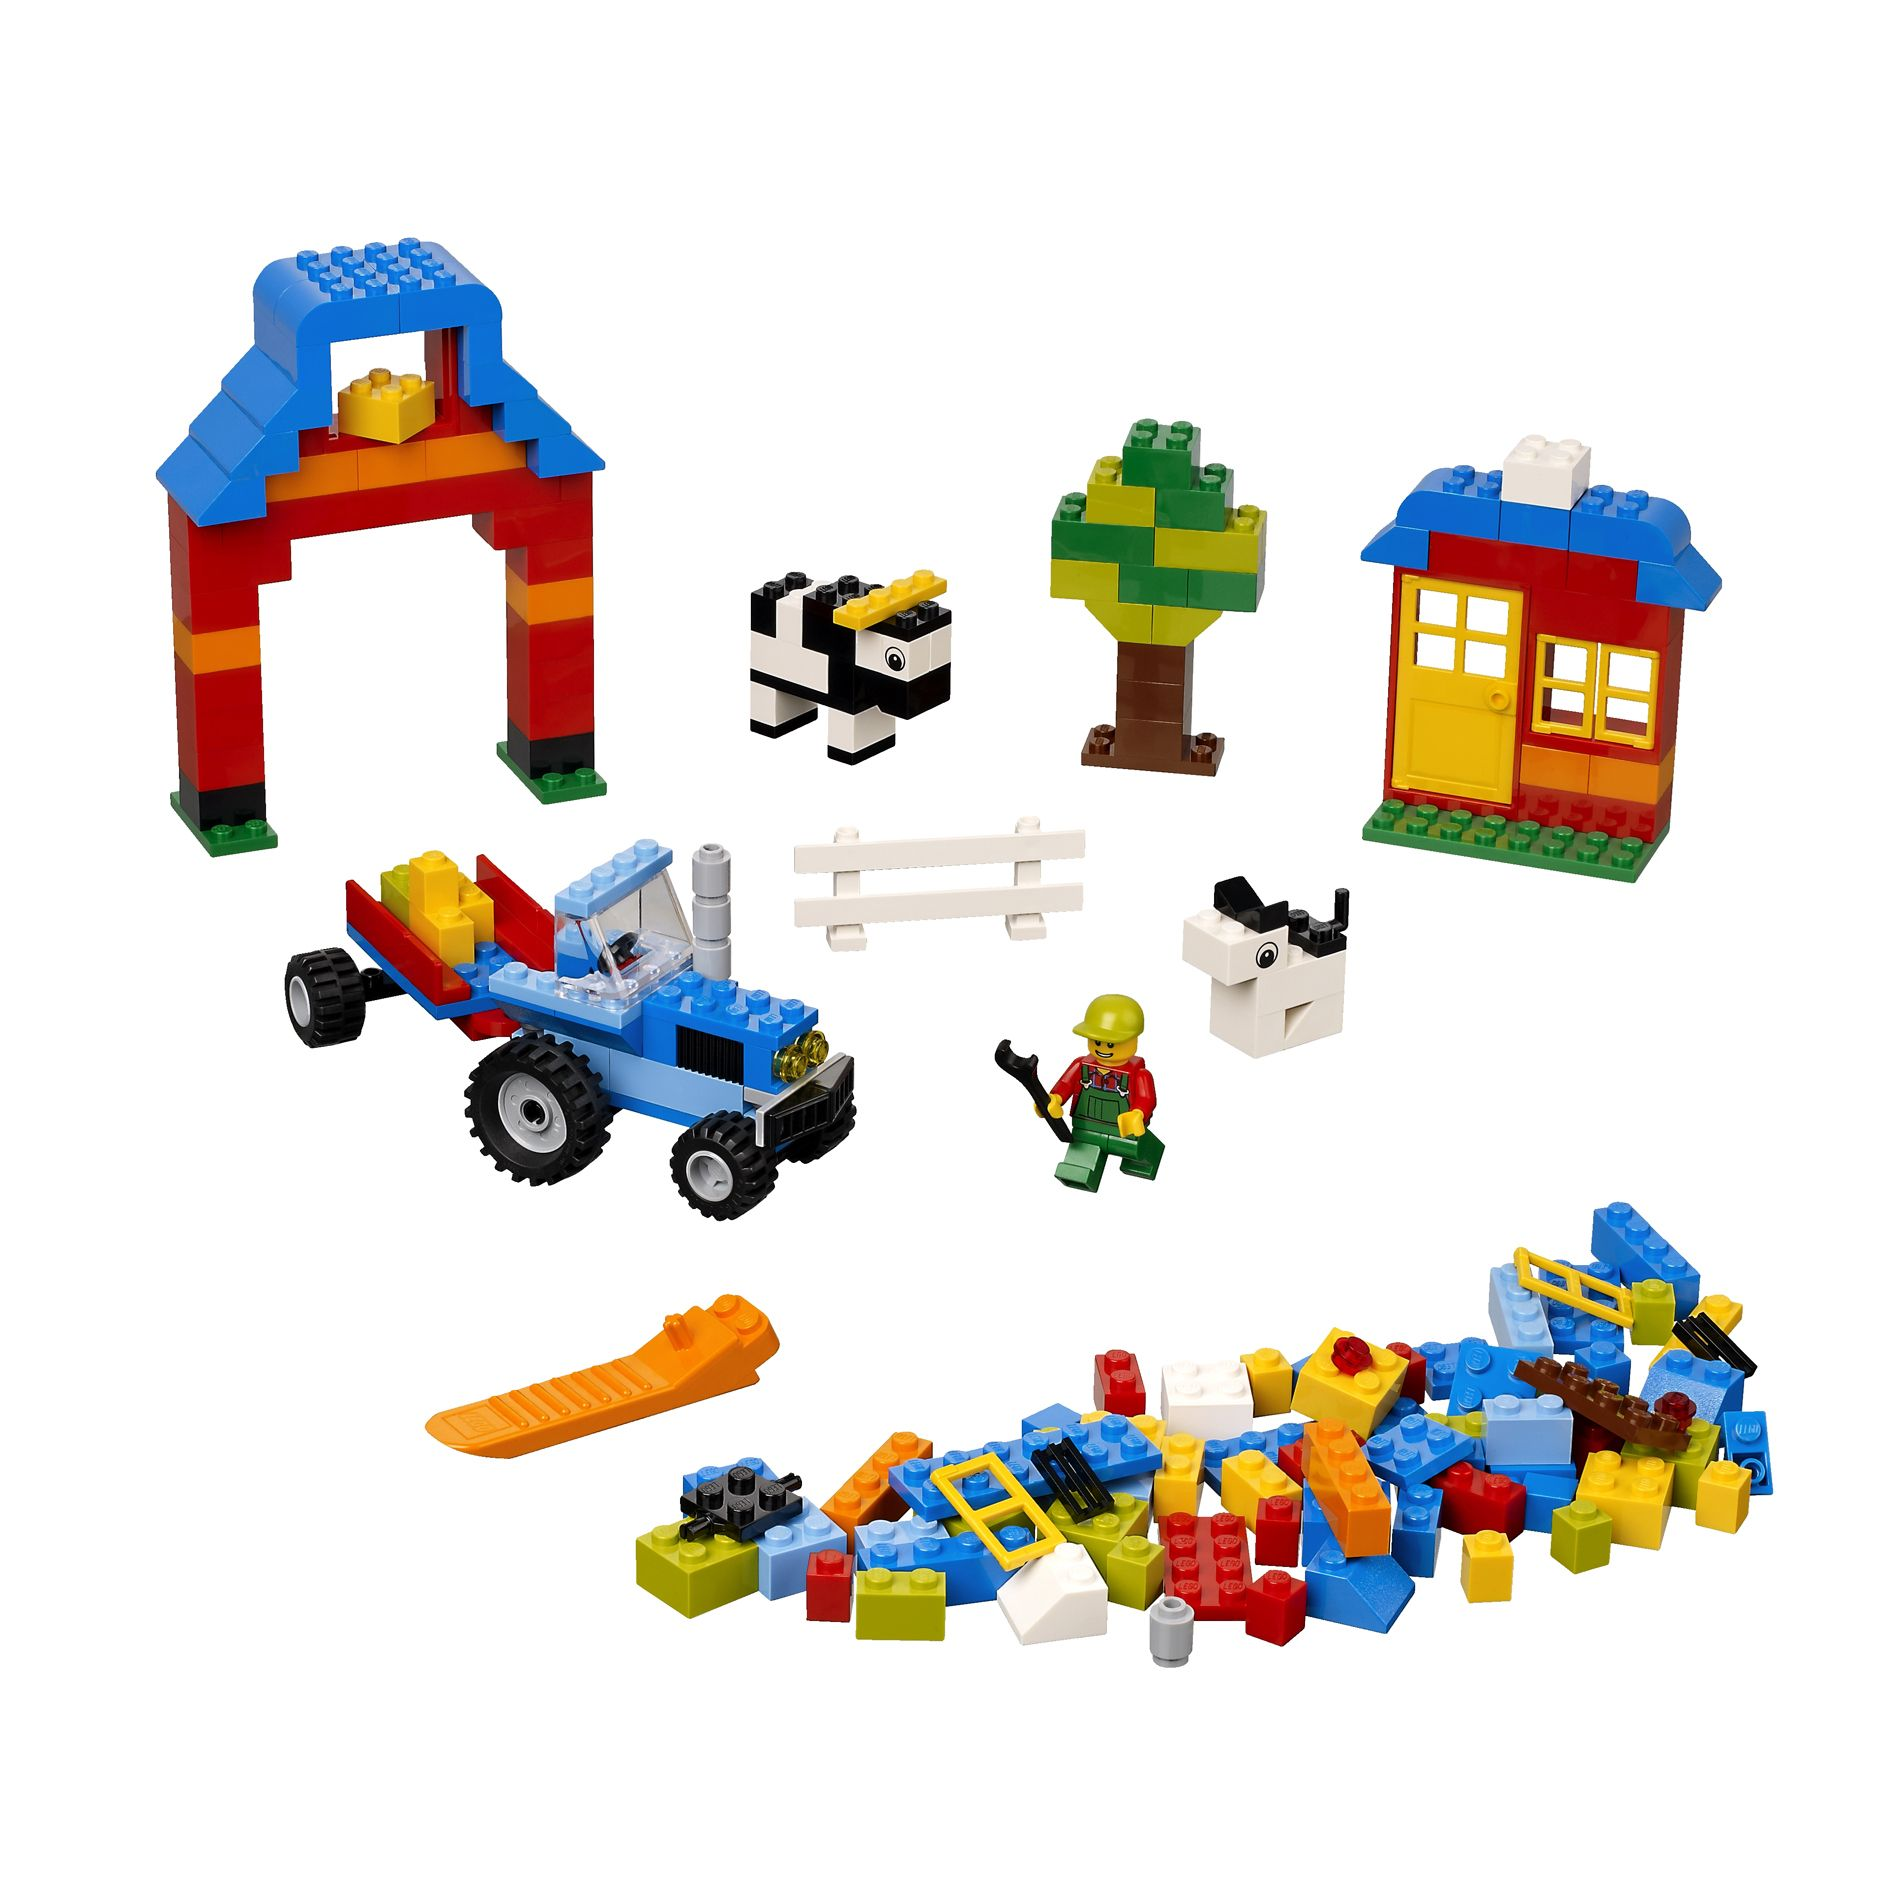 Blue Brick Box Set 4626                                                                                                          at mygofer.com